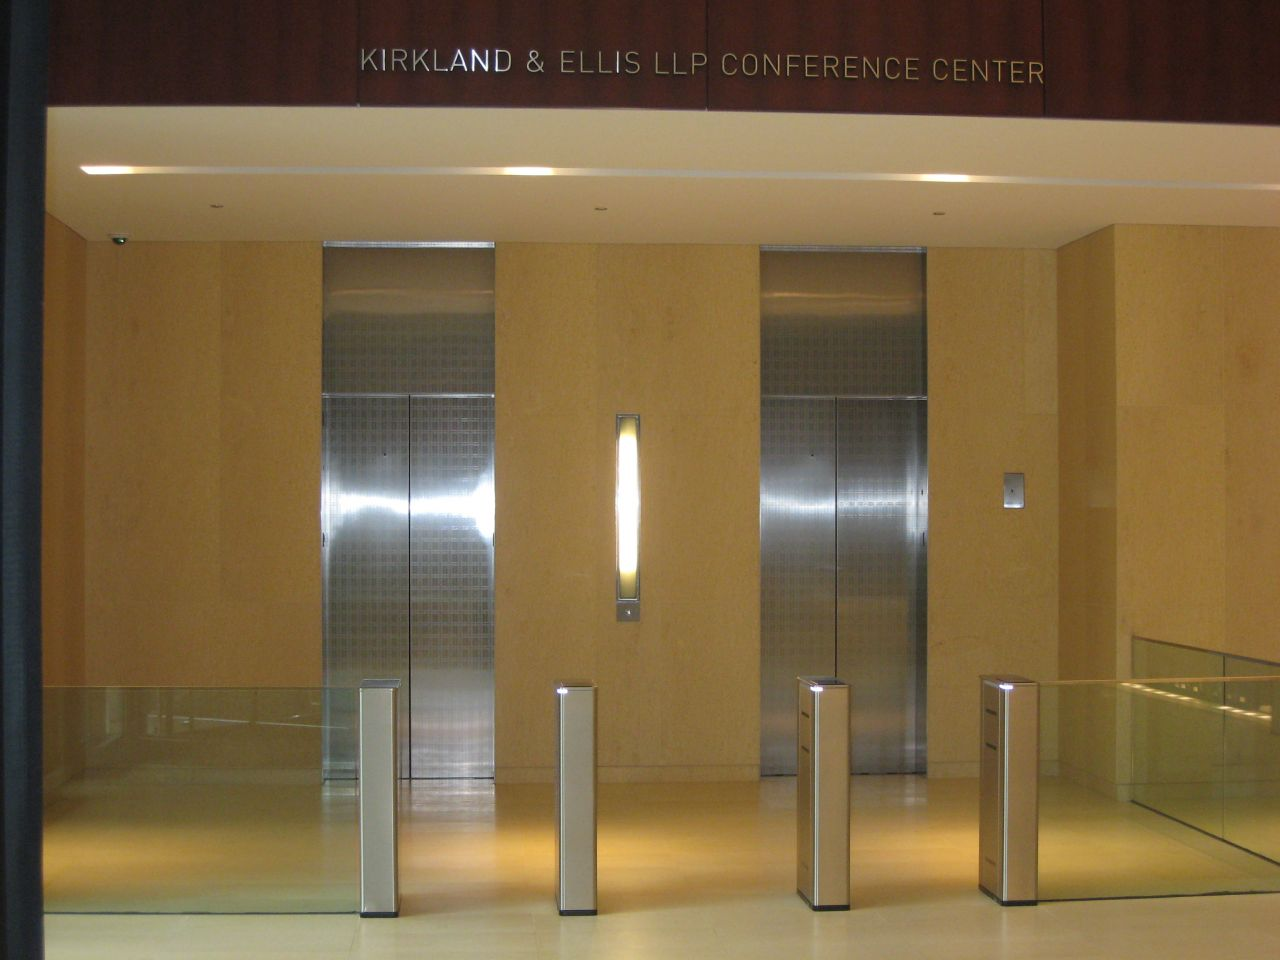 Elevator entrance for guests on the first floor.